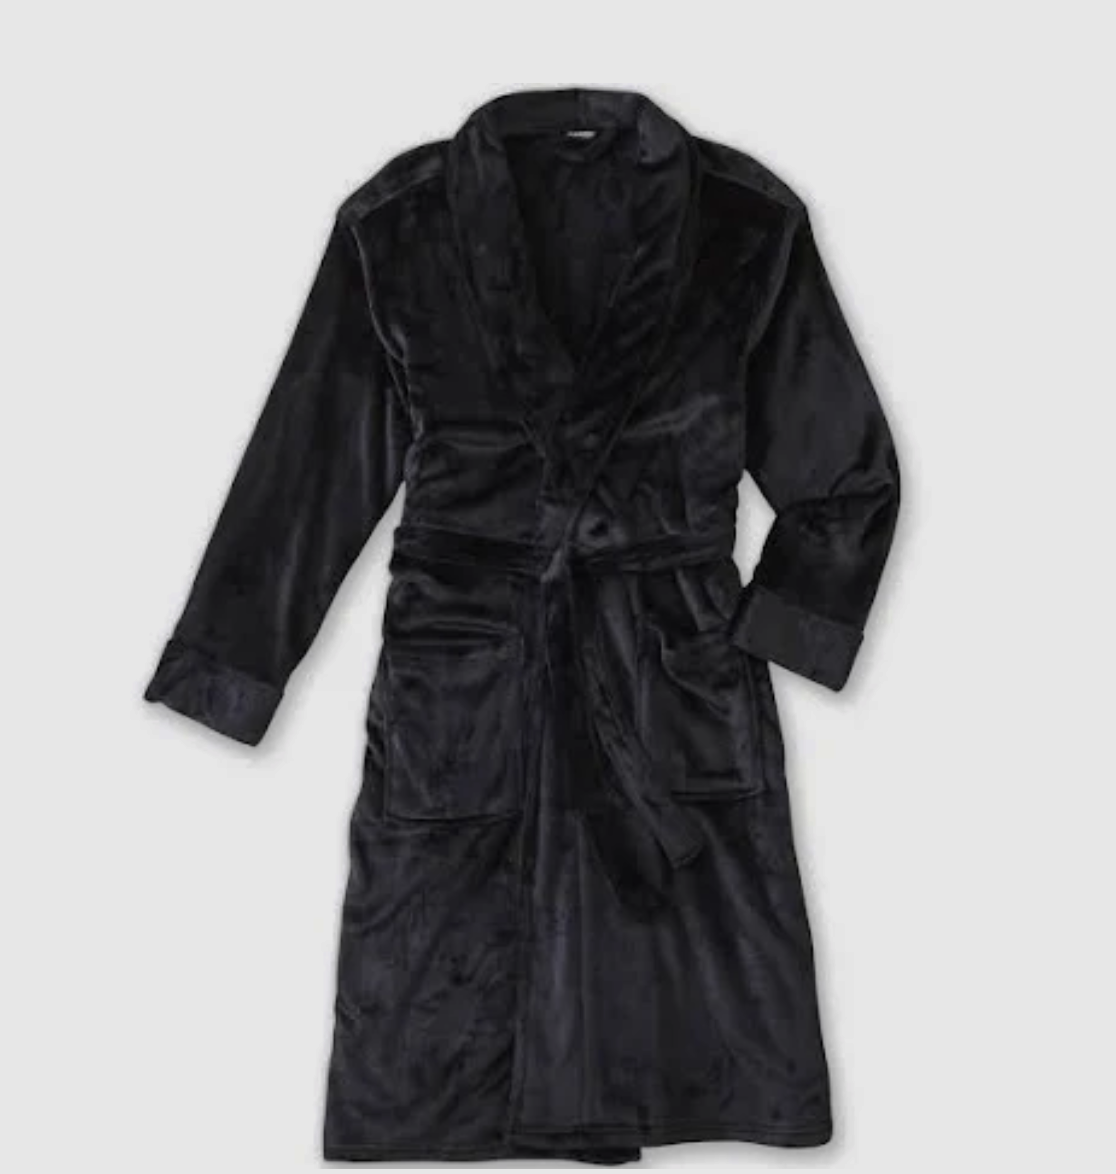 ROBE - This one from Target will be his new favorite outfit for lounge days. And it's on sale for $25.